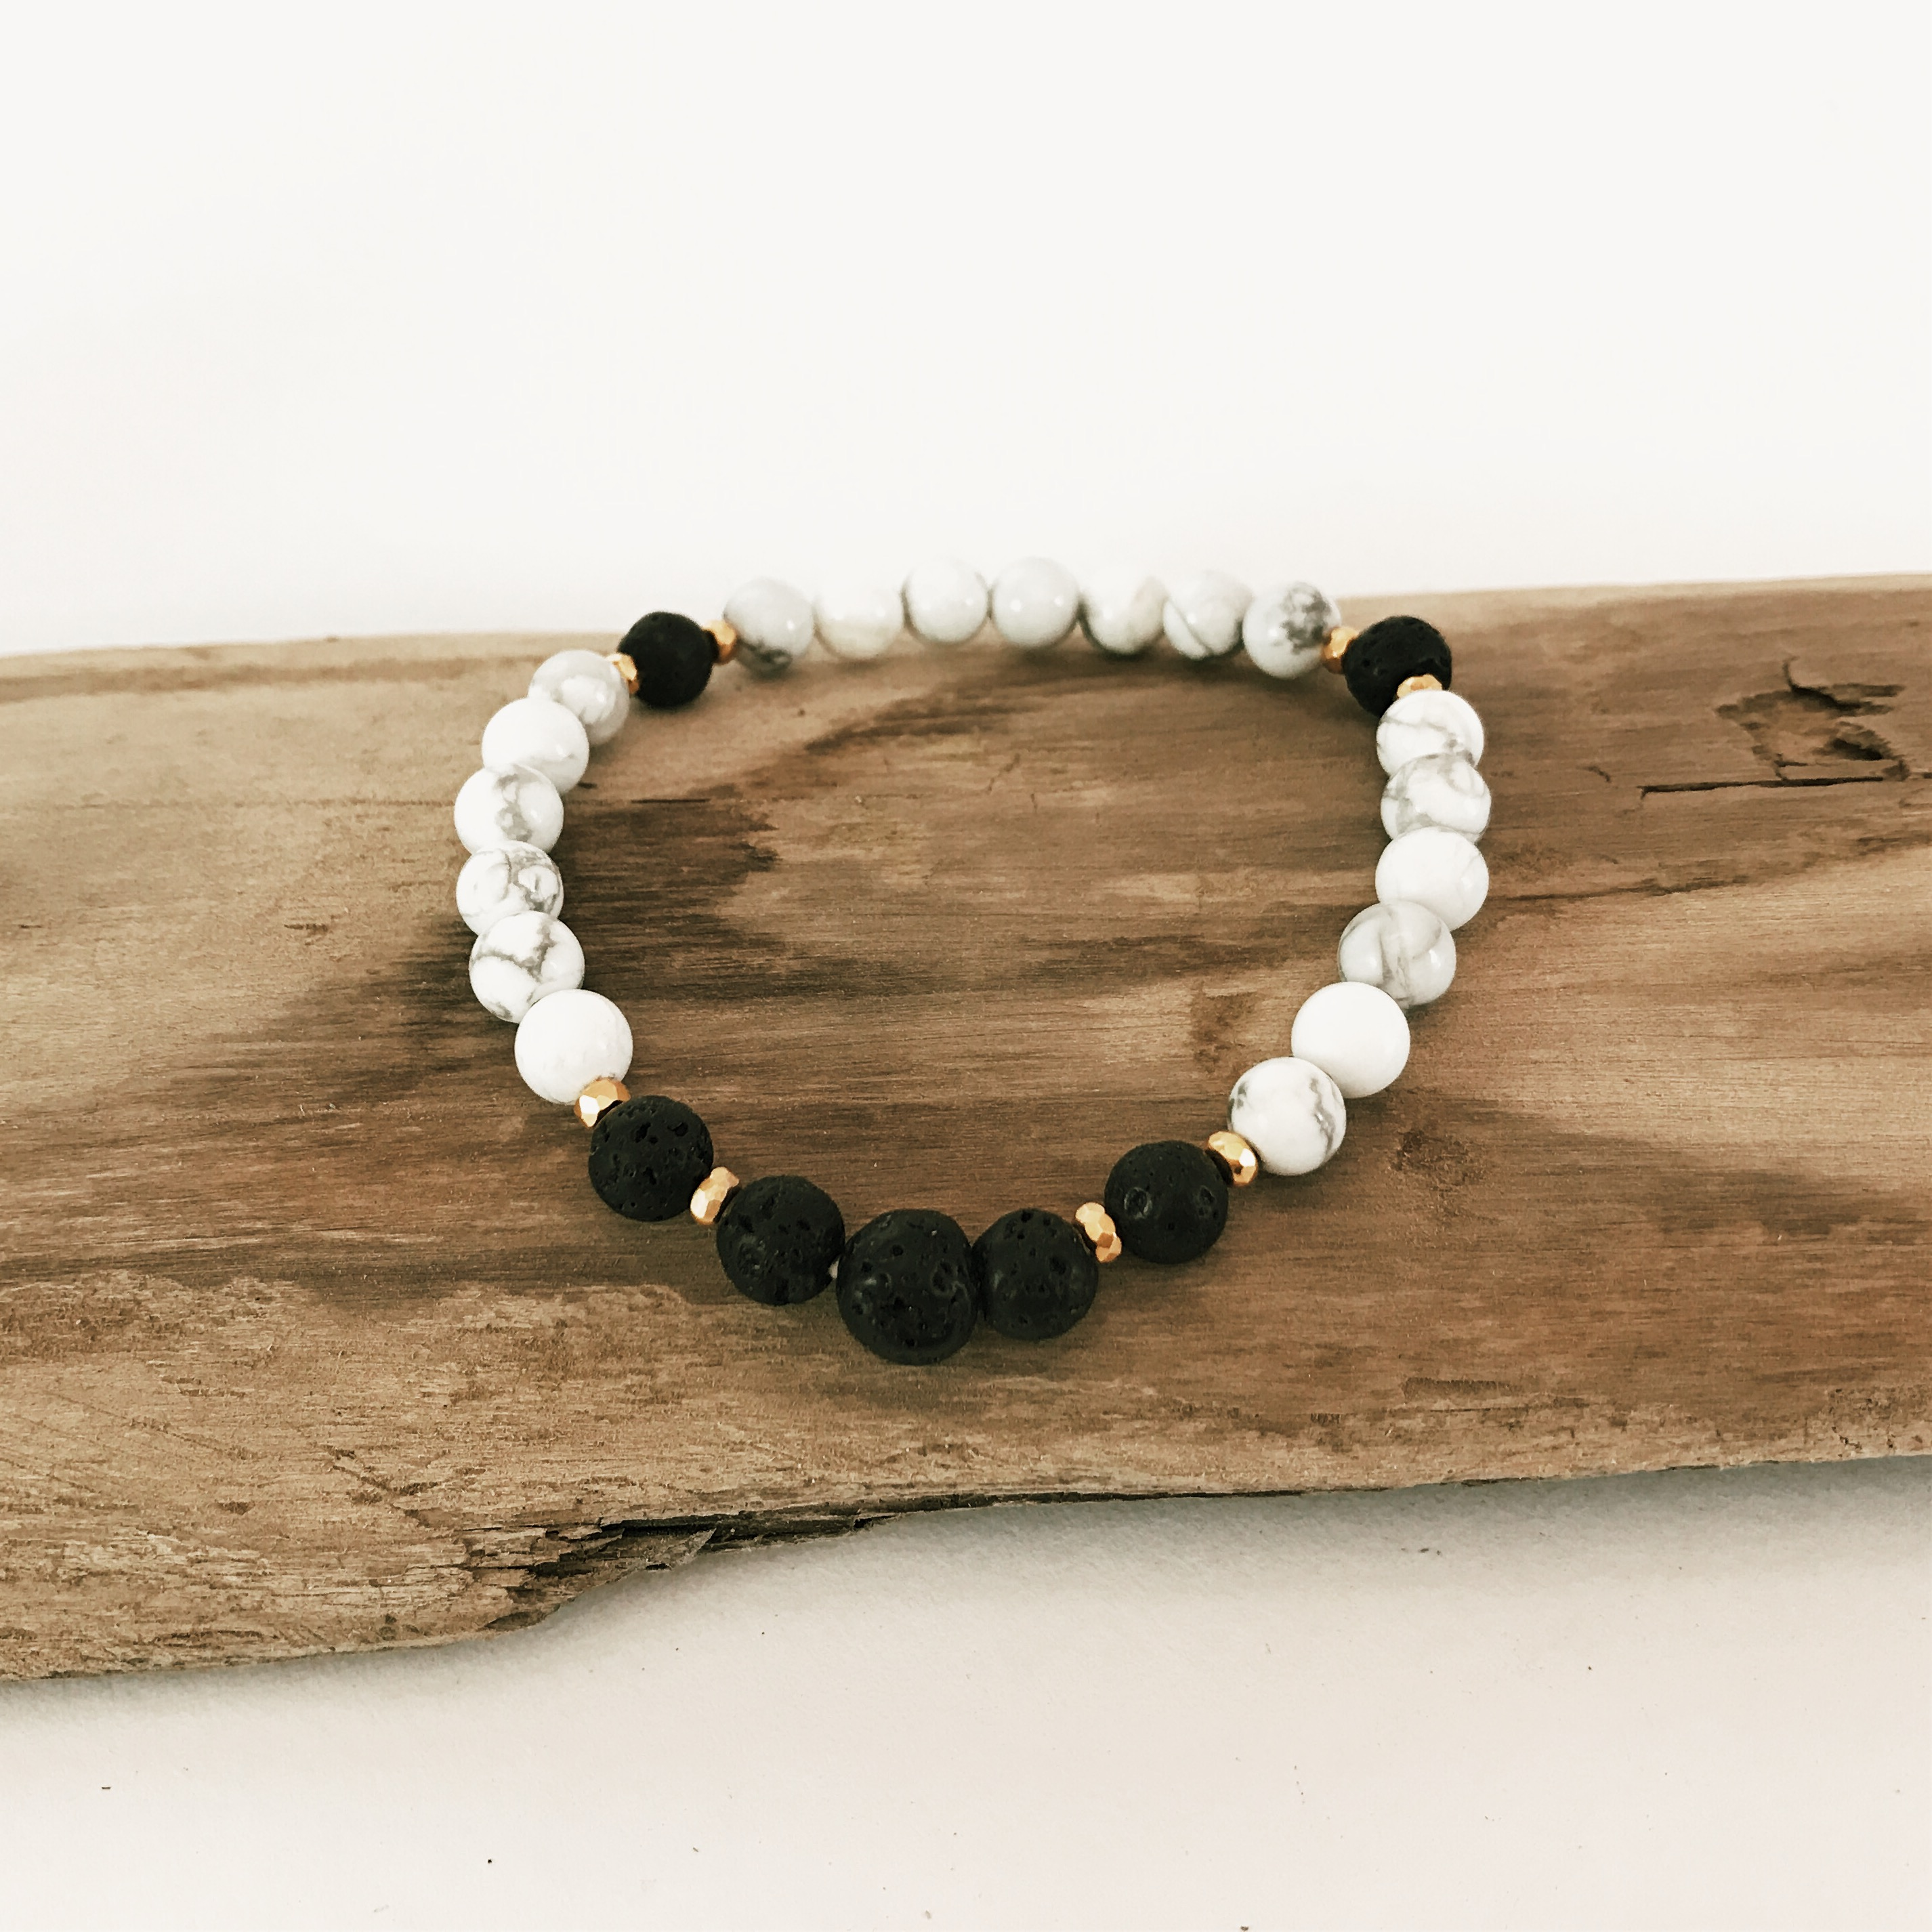 Howlite with Lava Stone Beads